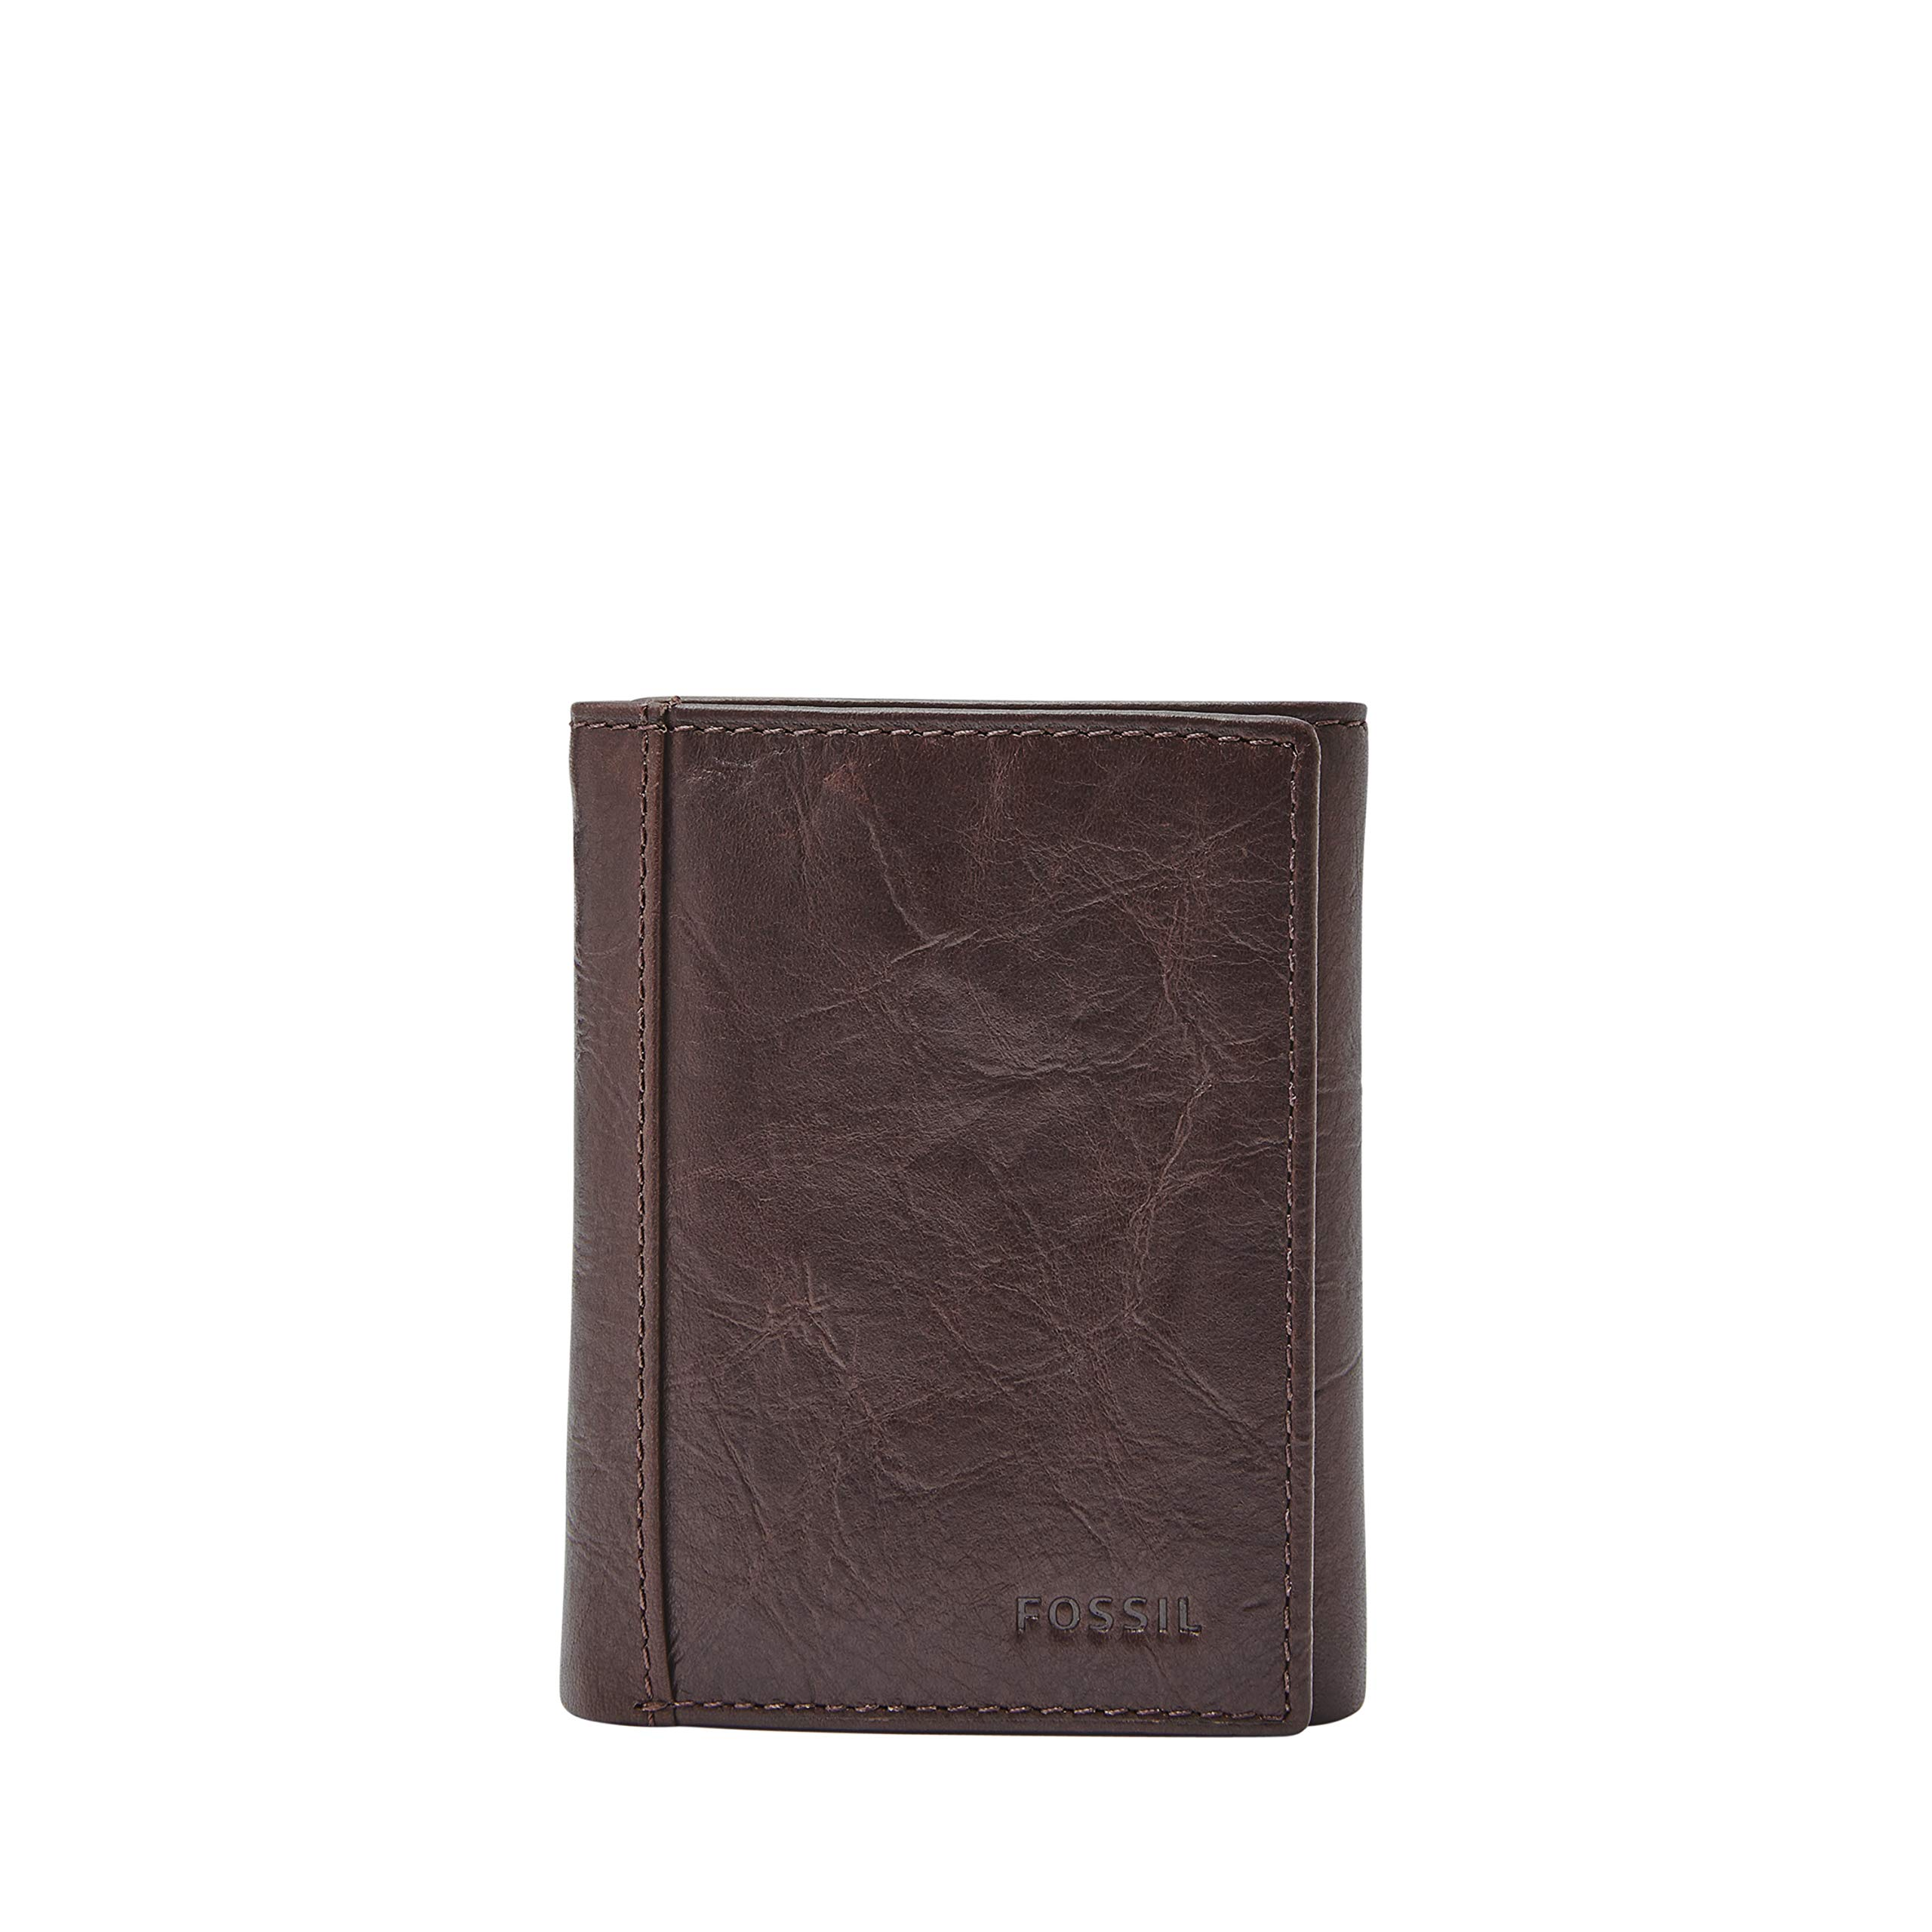 Fossil Men's Neel Leather Trifold Wallet, Brown, One Size